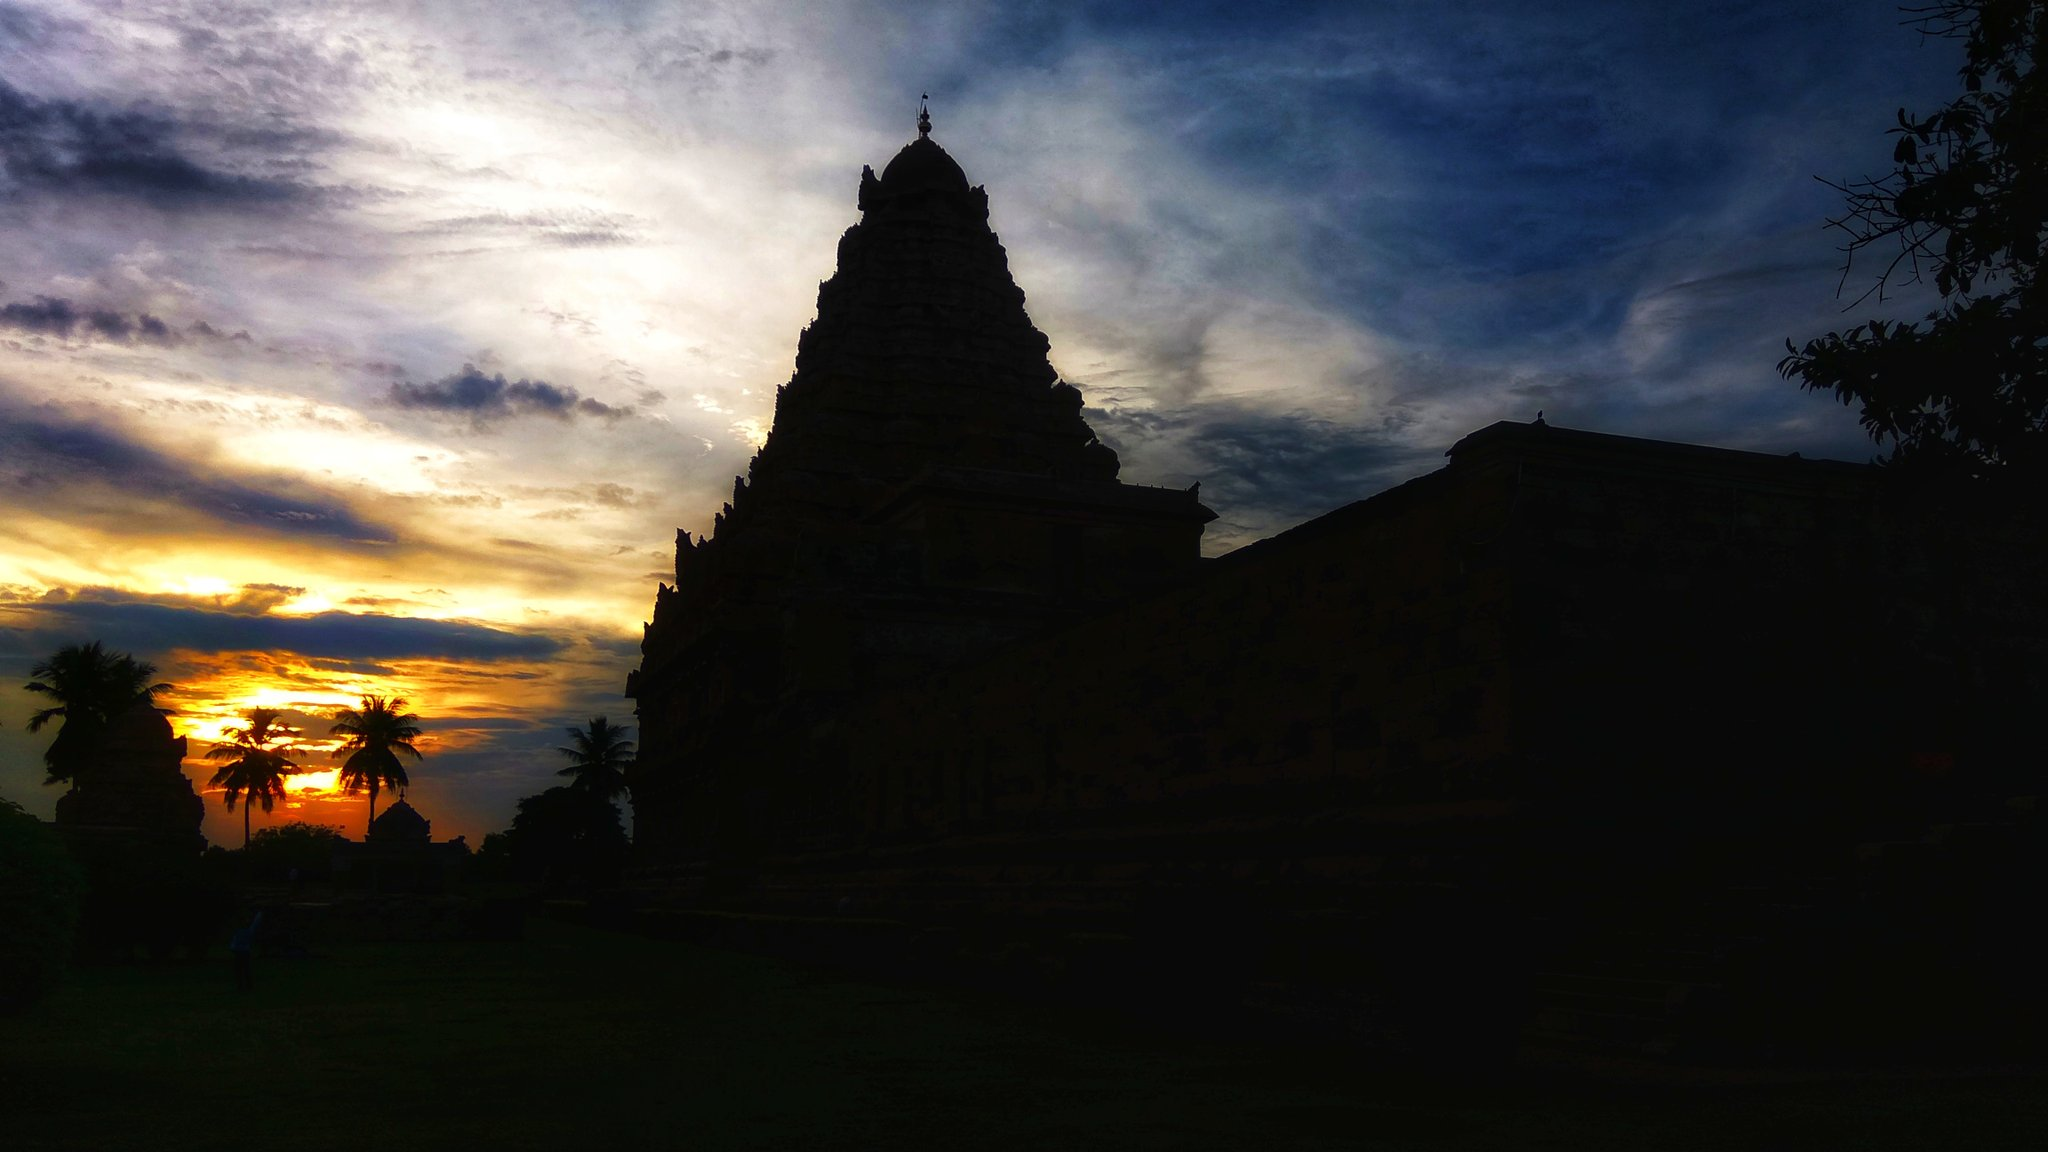 I'll conclude this temple thread with these silhouette shots I took during sunset. Hope you found the thread useful. Thank you for reading 🙏 https://t.co/95KLIQpAQZ